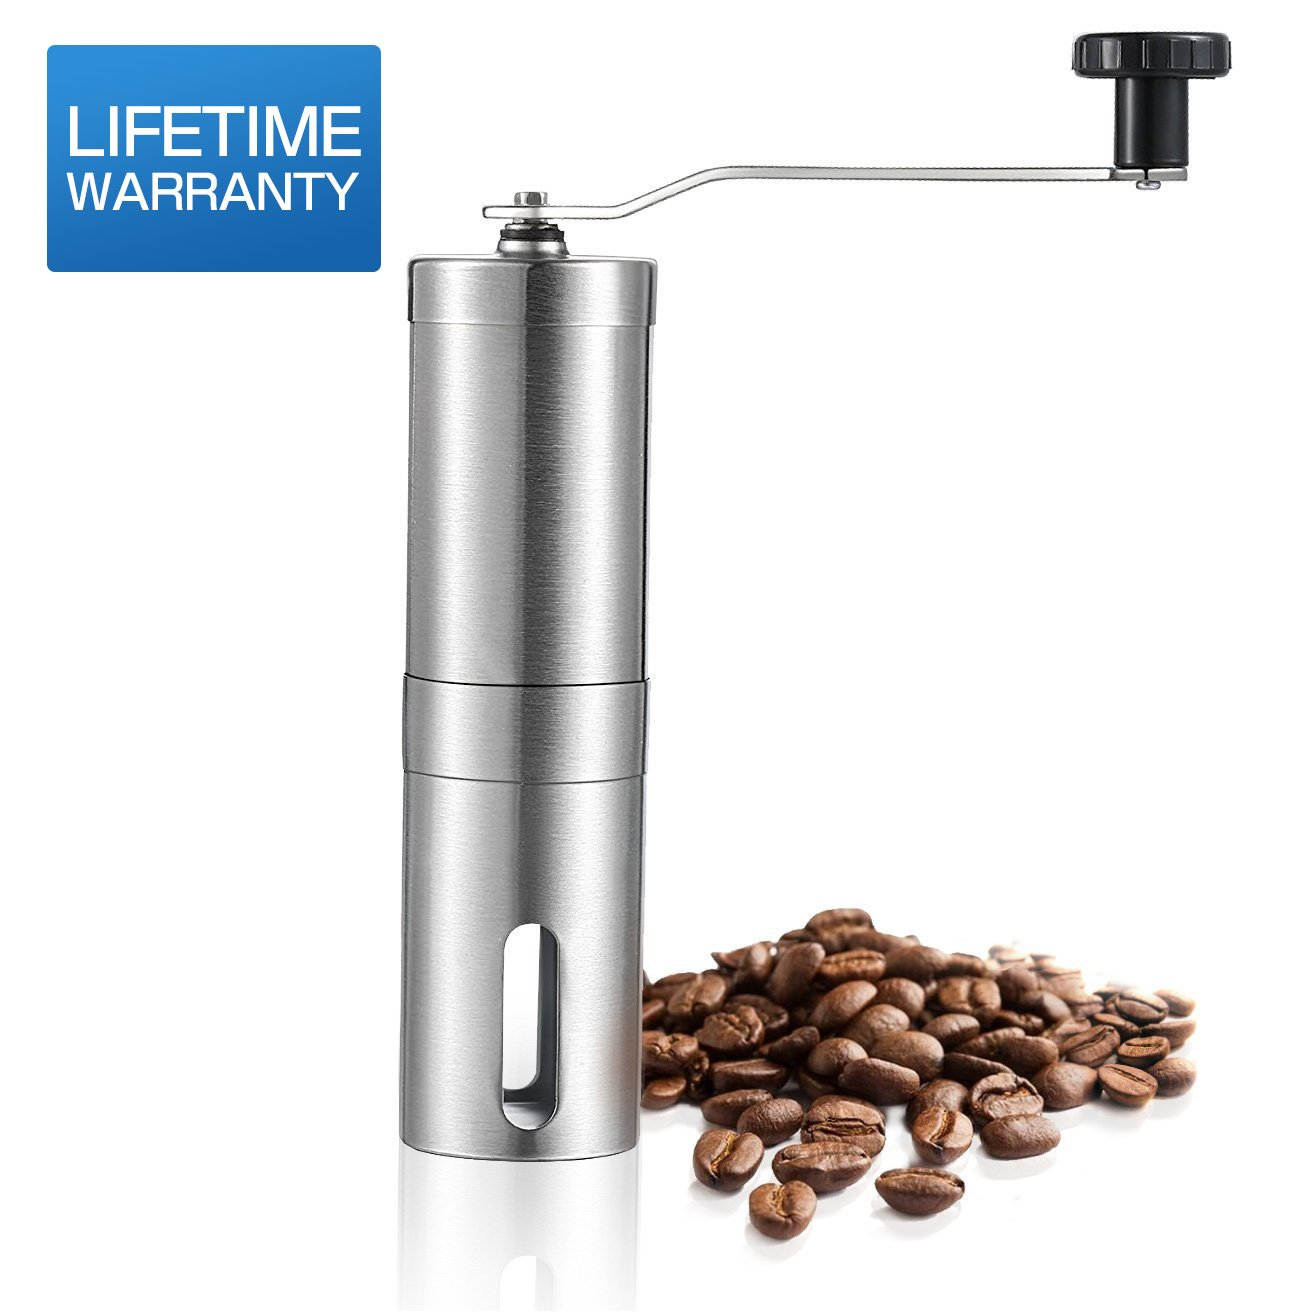 AmazeFan Coffee Grinder, Premium Quality Stainless Steel Manual Coffee Grinder - Adjustable Hand Grinder - Mini Portable Conical Burr Mill for Precision Brewing - 90-day Full Refund Guarantee by AmazeFan